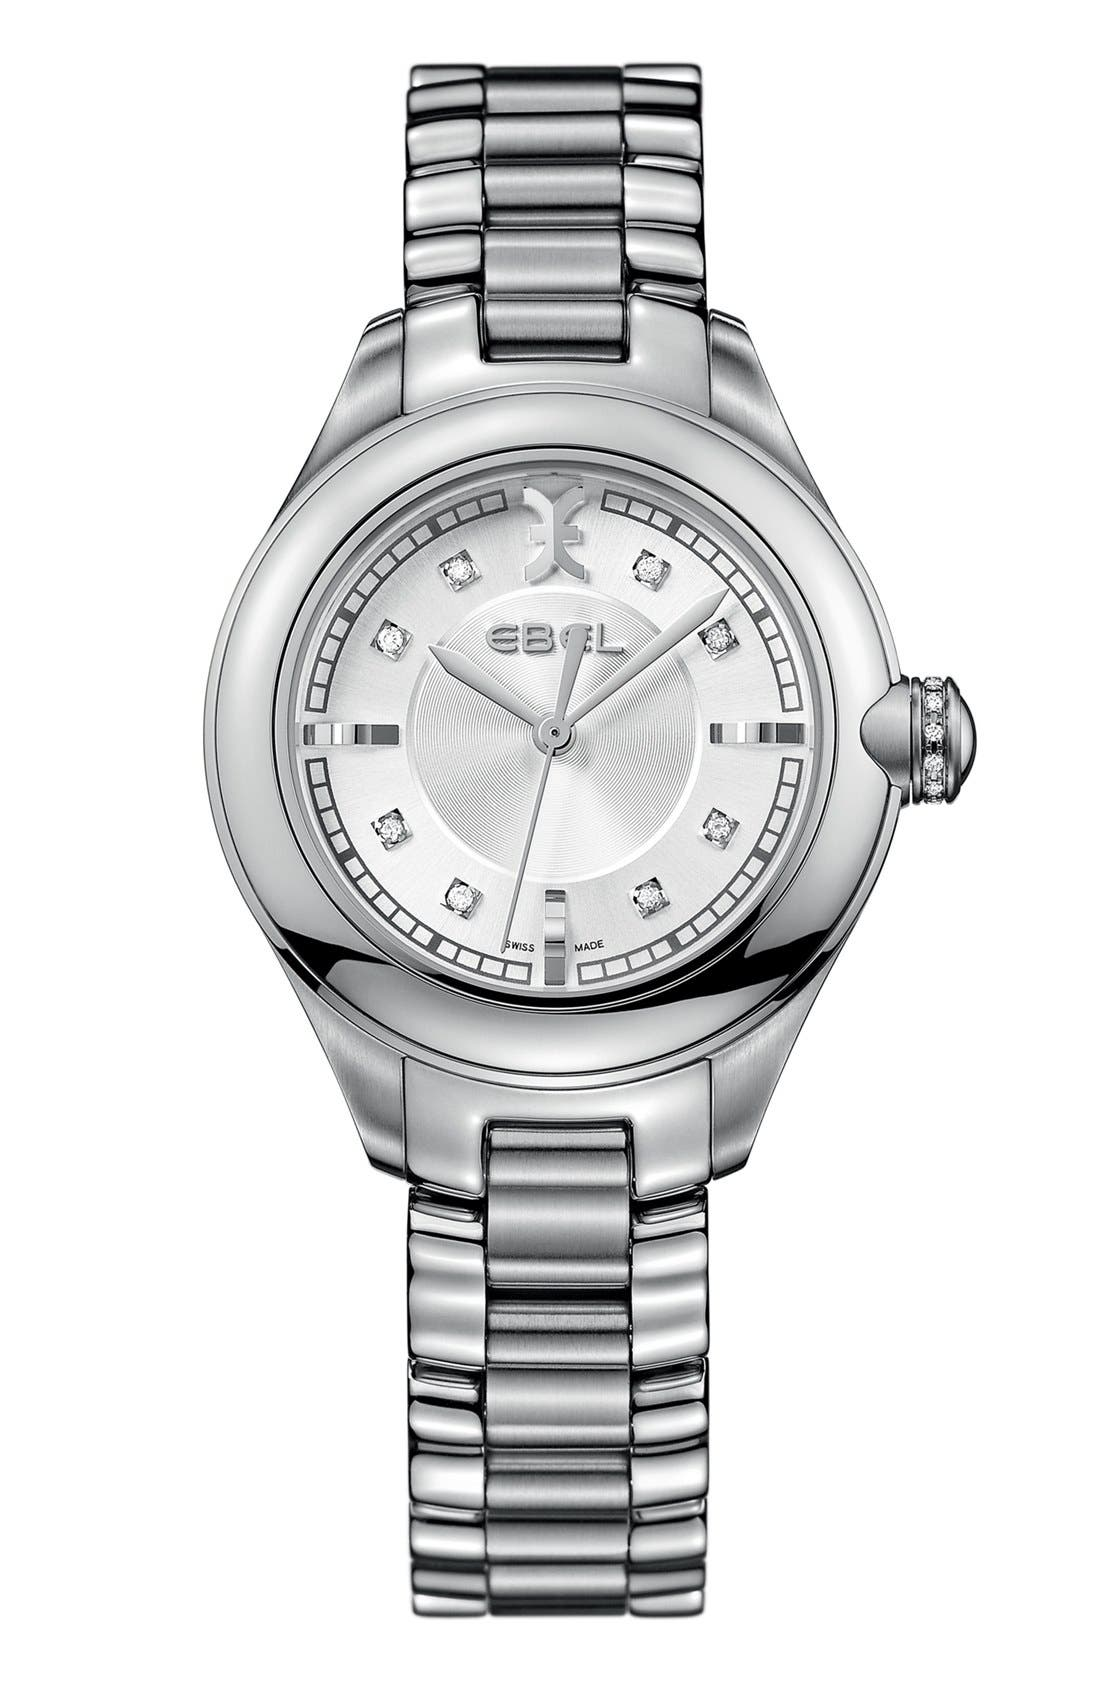 Alternate Image 1 Selected - EBEL 'Onde' Diamond Index Bracelet Watch, 30mm